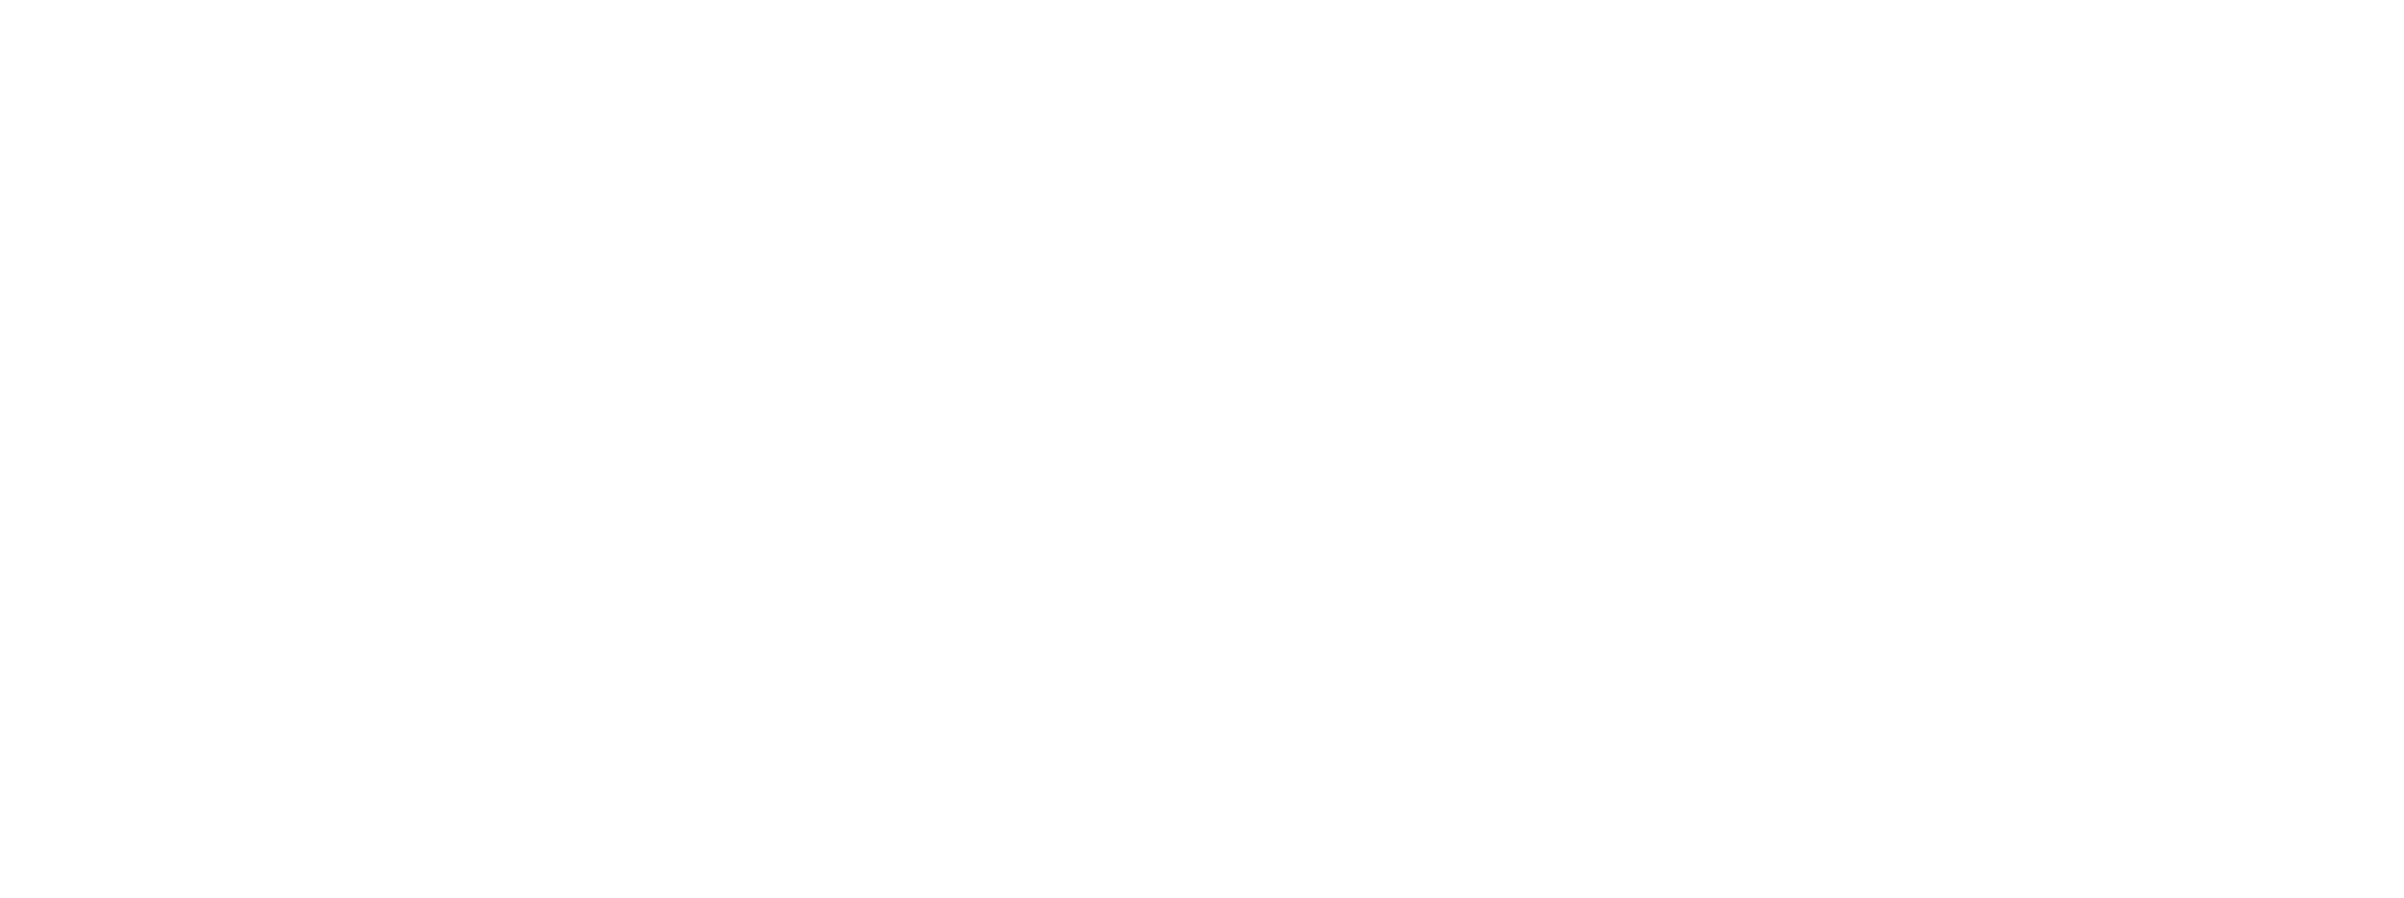 Electriacl Services %22r%22 unlimited white.png